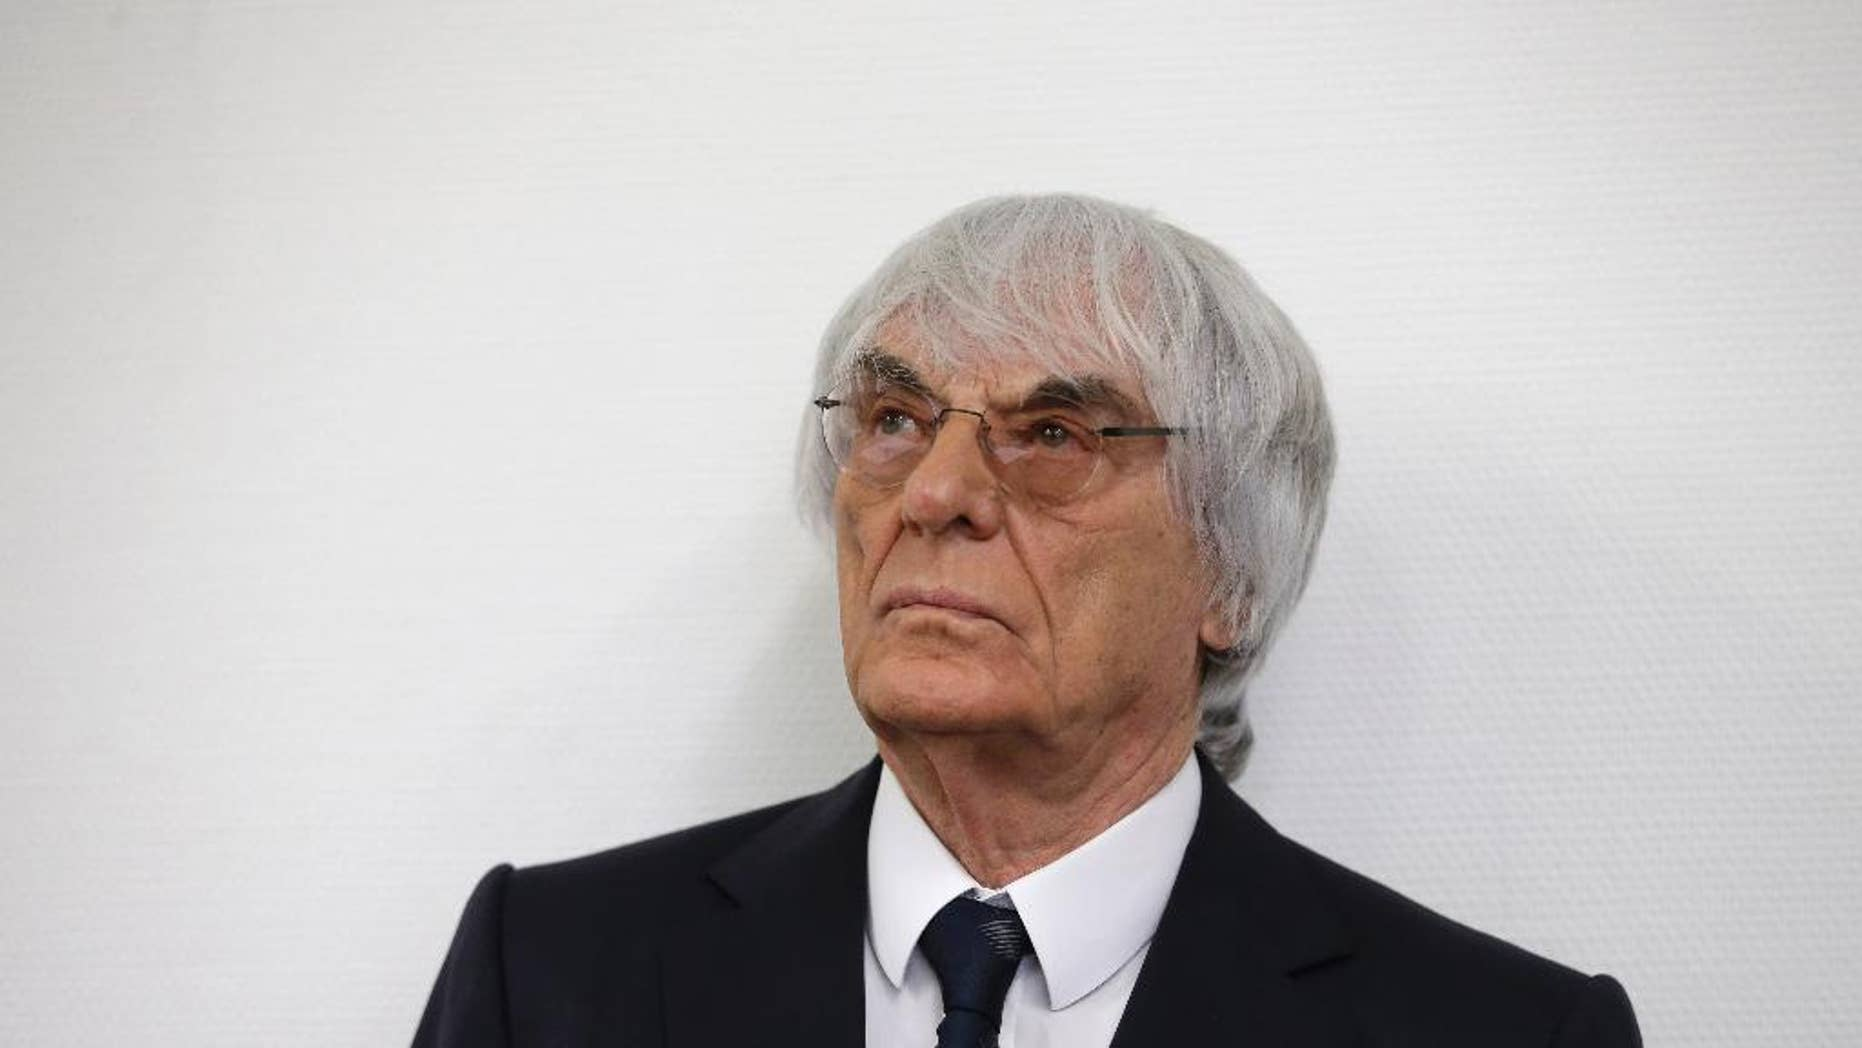 Formula One boss Bernie Ecclestone arrives for his trial in the regional court in Munich, southern Germany, Tuesday, Aug.5, 2014. German prosecutors said Tuesday that they will accept dropping the bribery case against Ecclestone in exchange for a US dollar 100 million payment by the Formula One boss, and judges were considering whether to close his trial. Ecclestone went on trial at the Munich state court in late April on charges of bribery and incitement to breach of trust — which could, if he were convicted, carry a sentence of up to 10 years in prison. (AP Photo/Matthias Schrader)